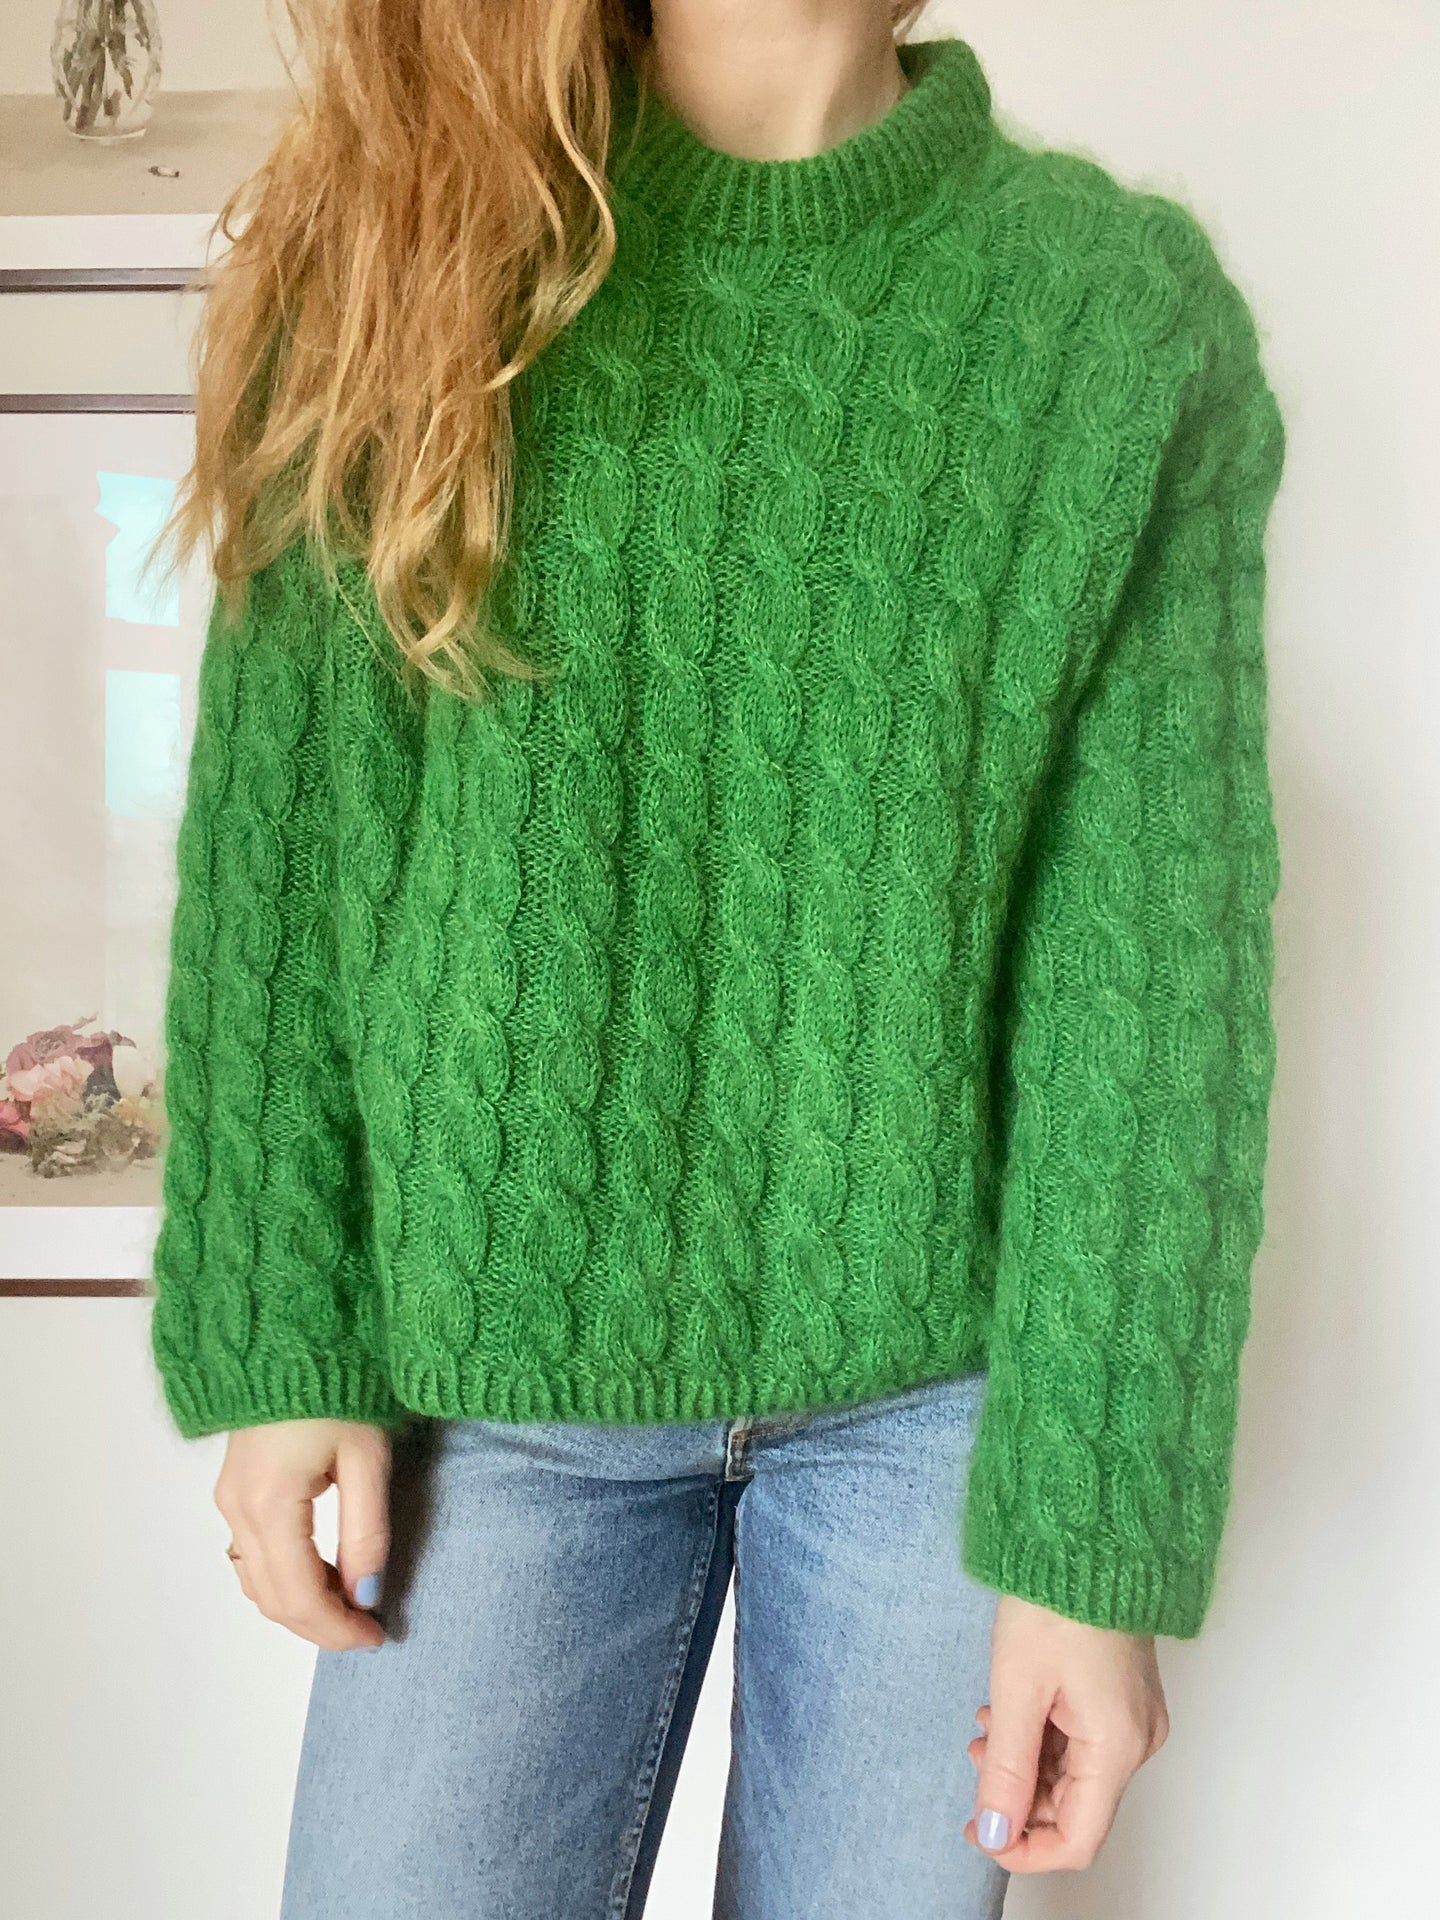 Sweater No. 15 - DE